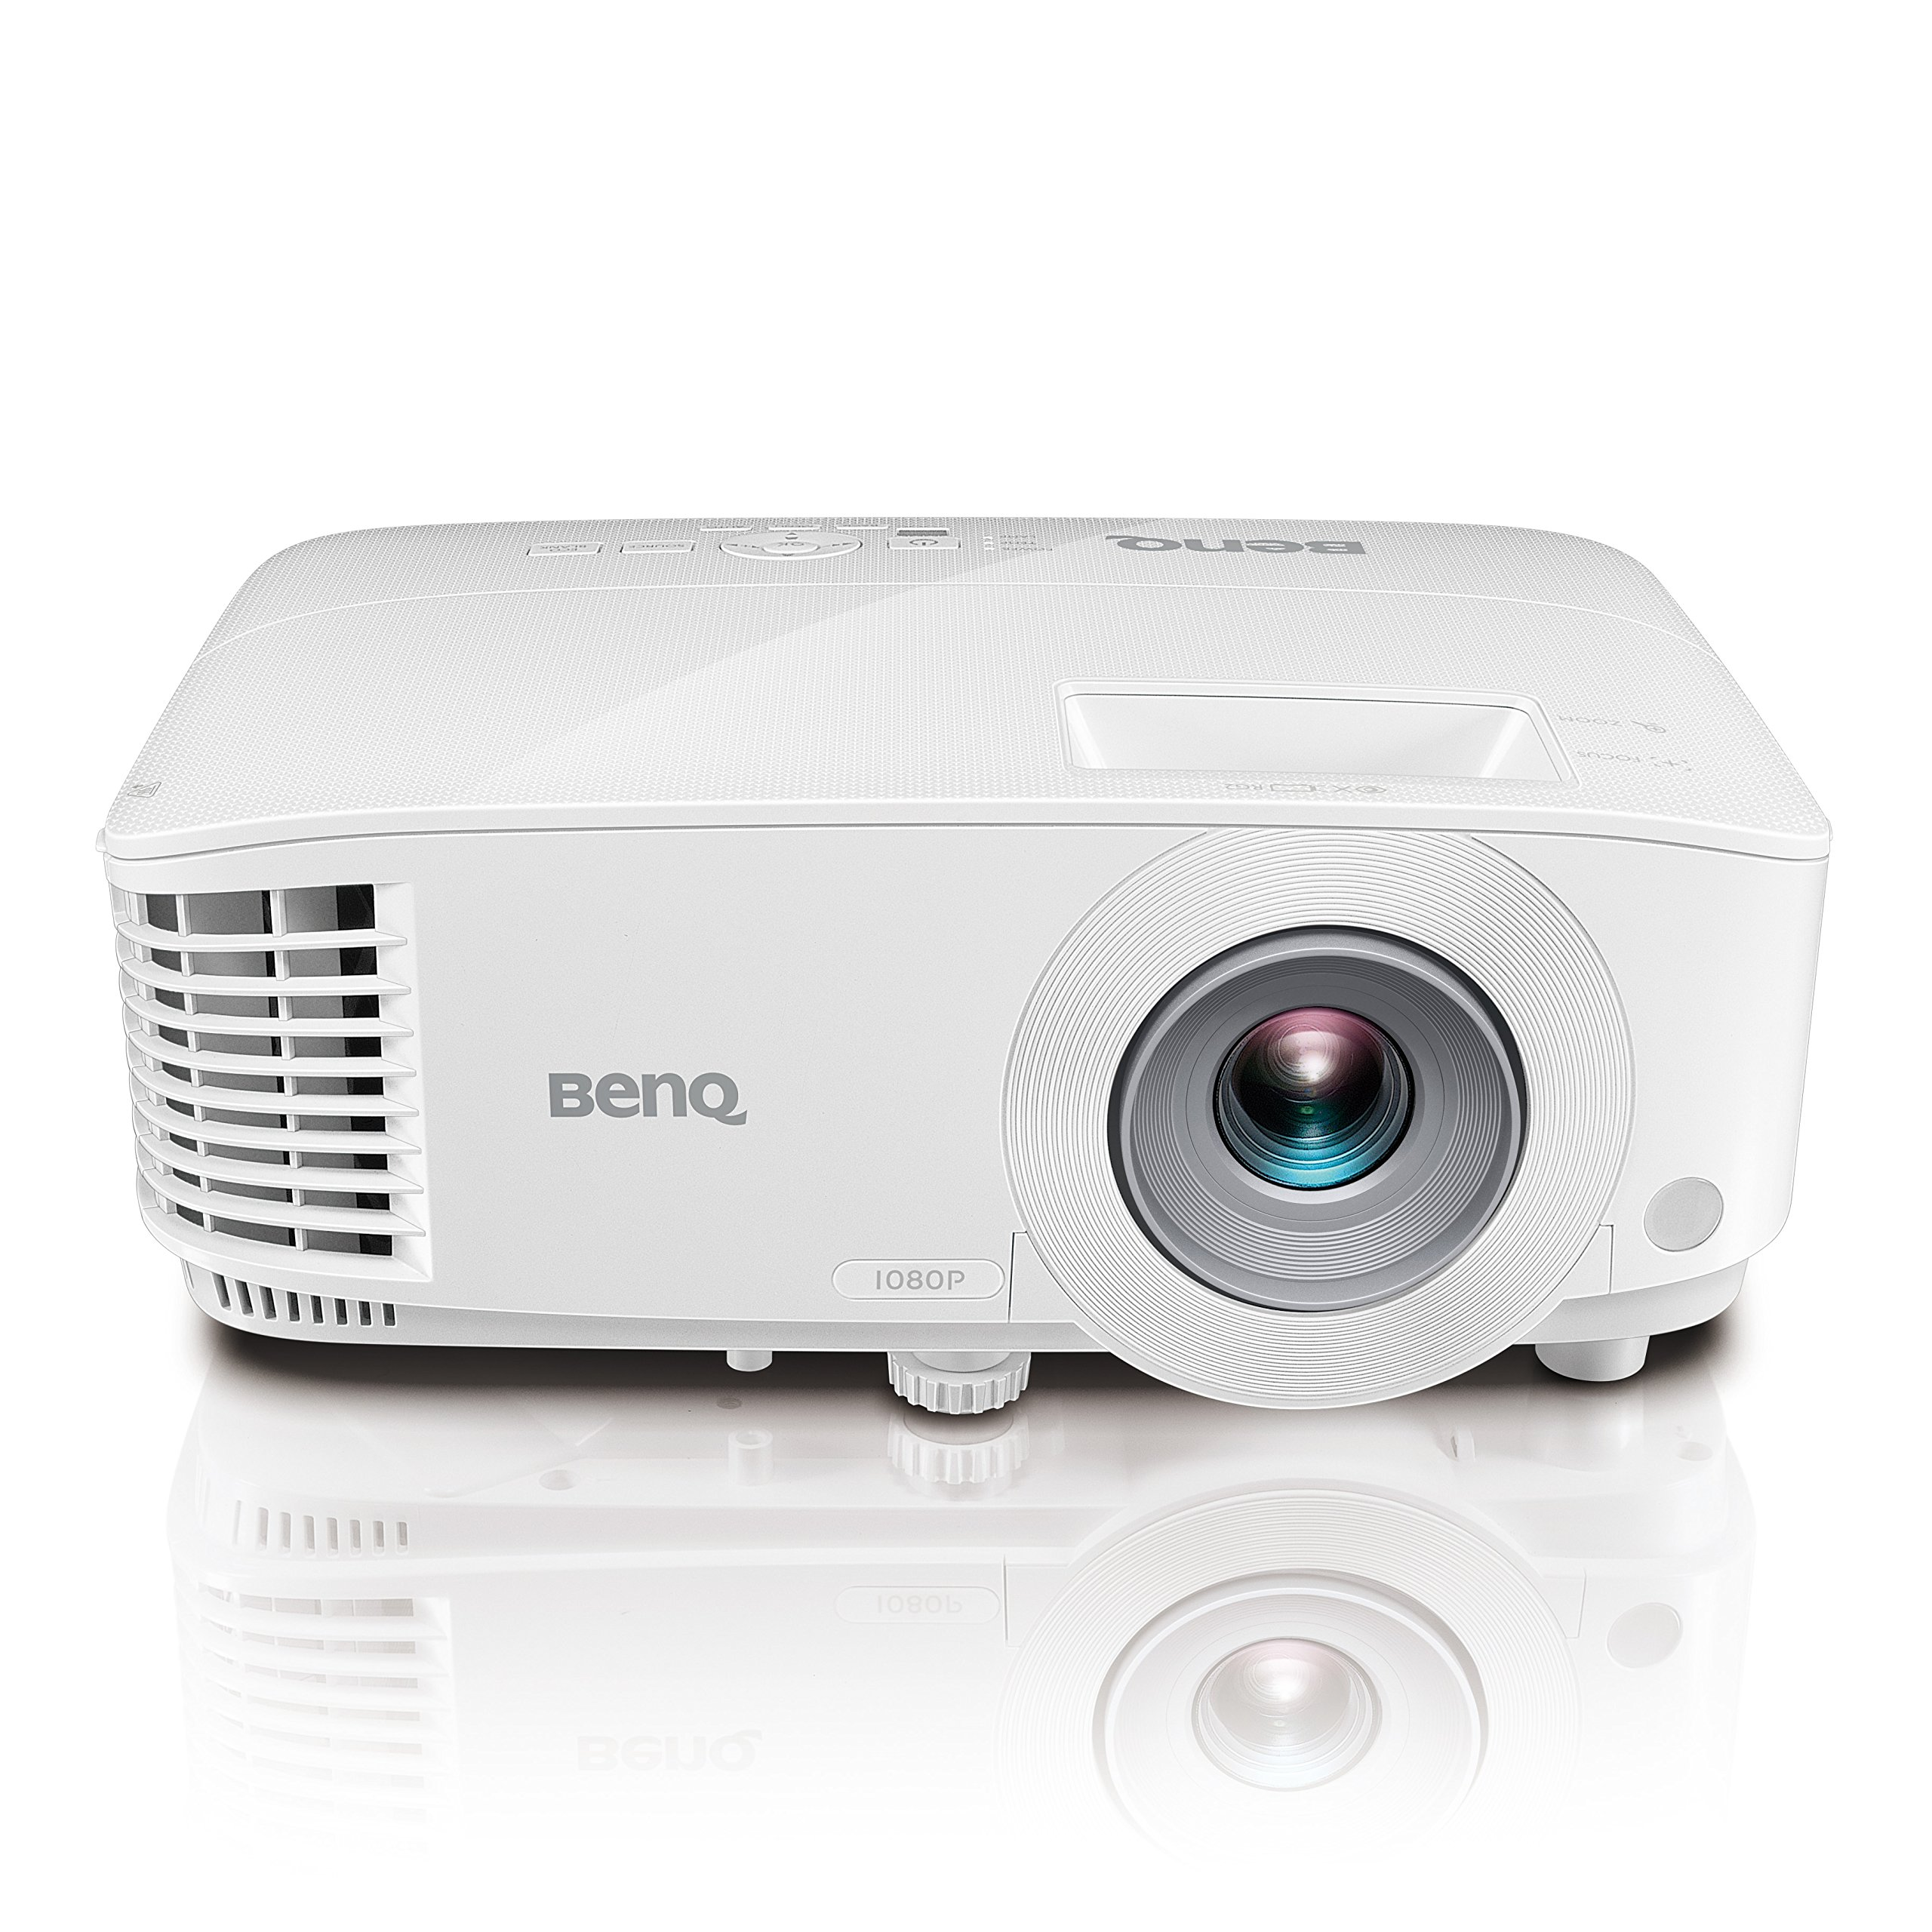 "BenQ 1080p DLP Business Projector (MH733), 4000 Lumens, Full HD 1920x1080, Wireless, Network, 3D, HDMI, USB Reader, 10W Speaker, LAN Control, 100""@8.2ft, 1.3X Zoom"